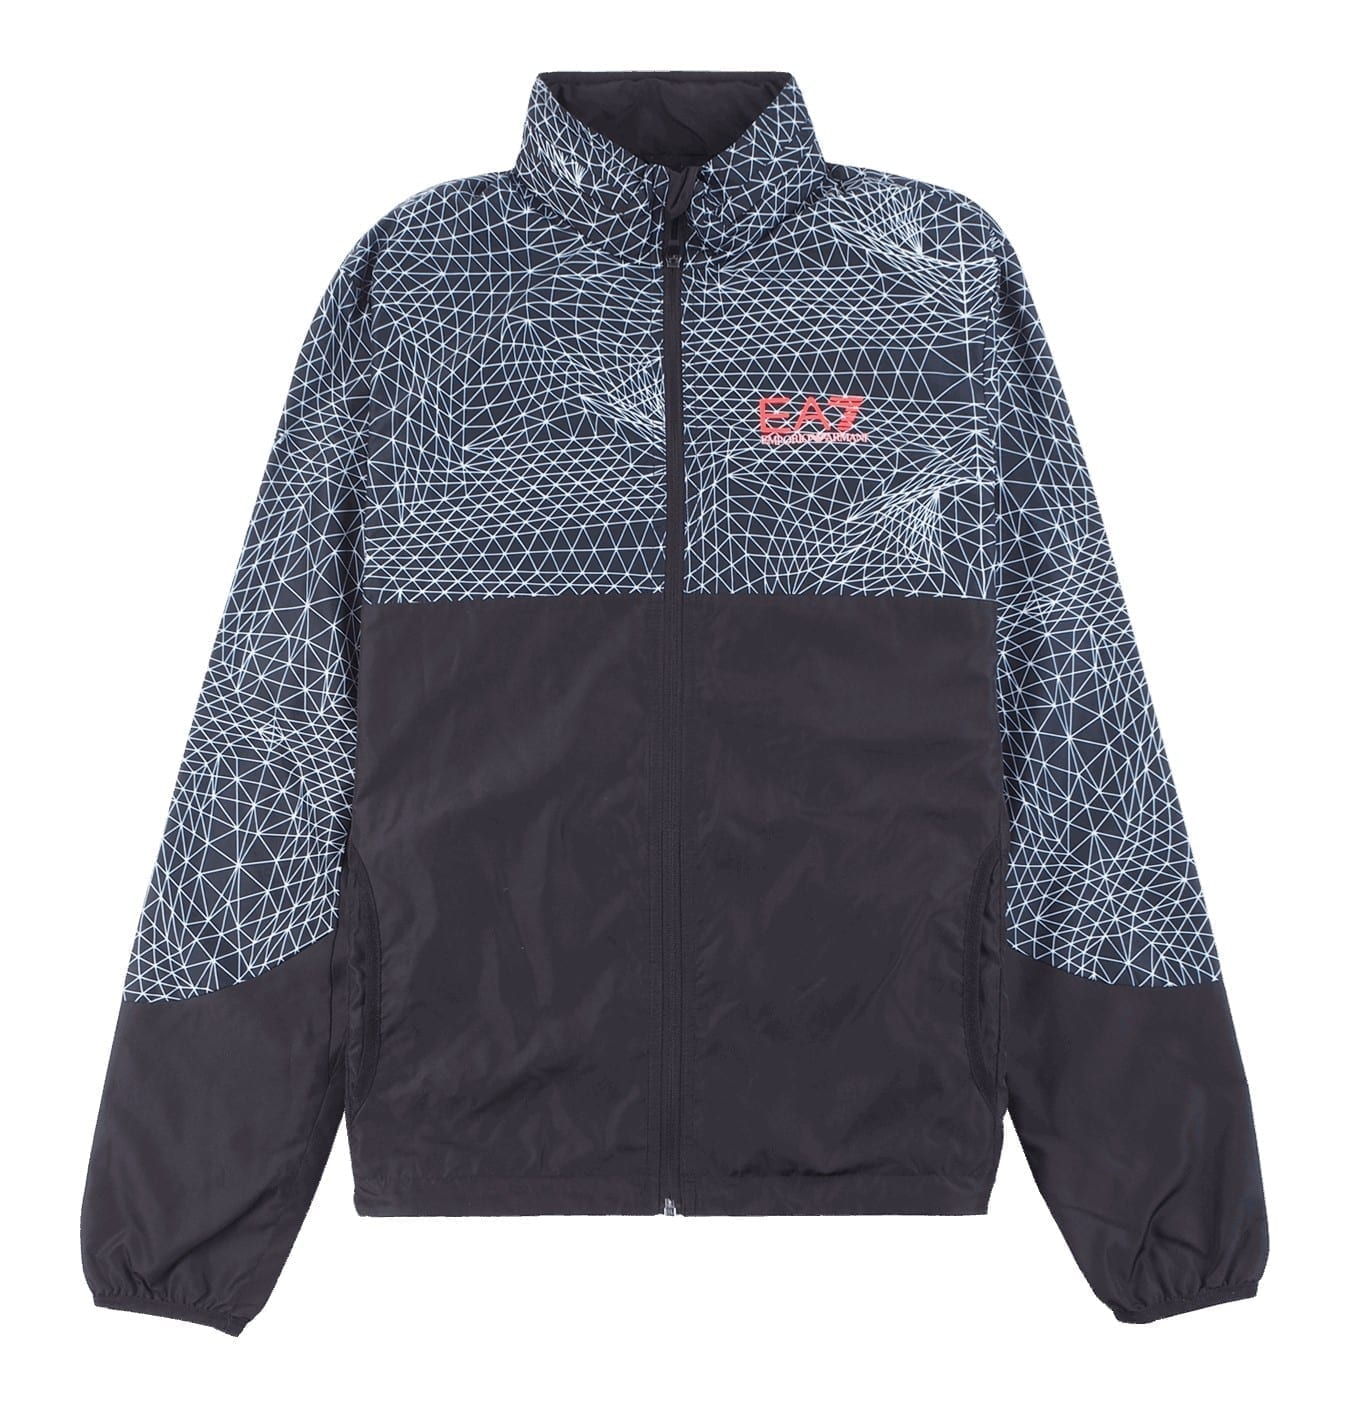 Image of   Bomber Jacket Patterned